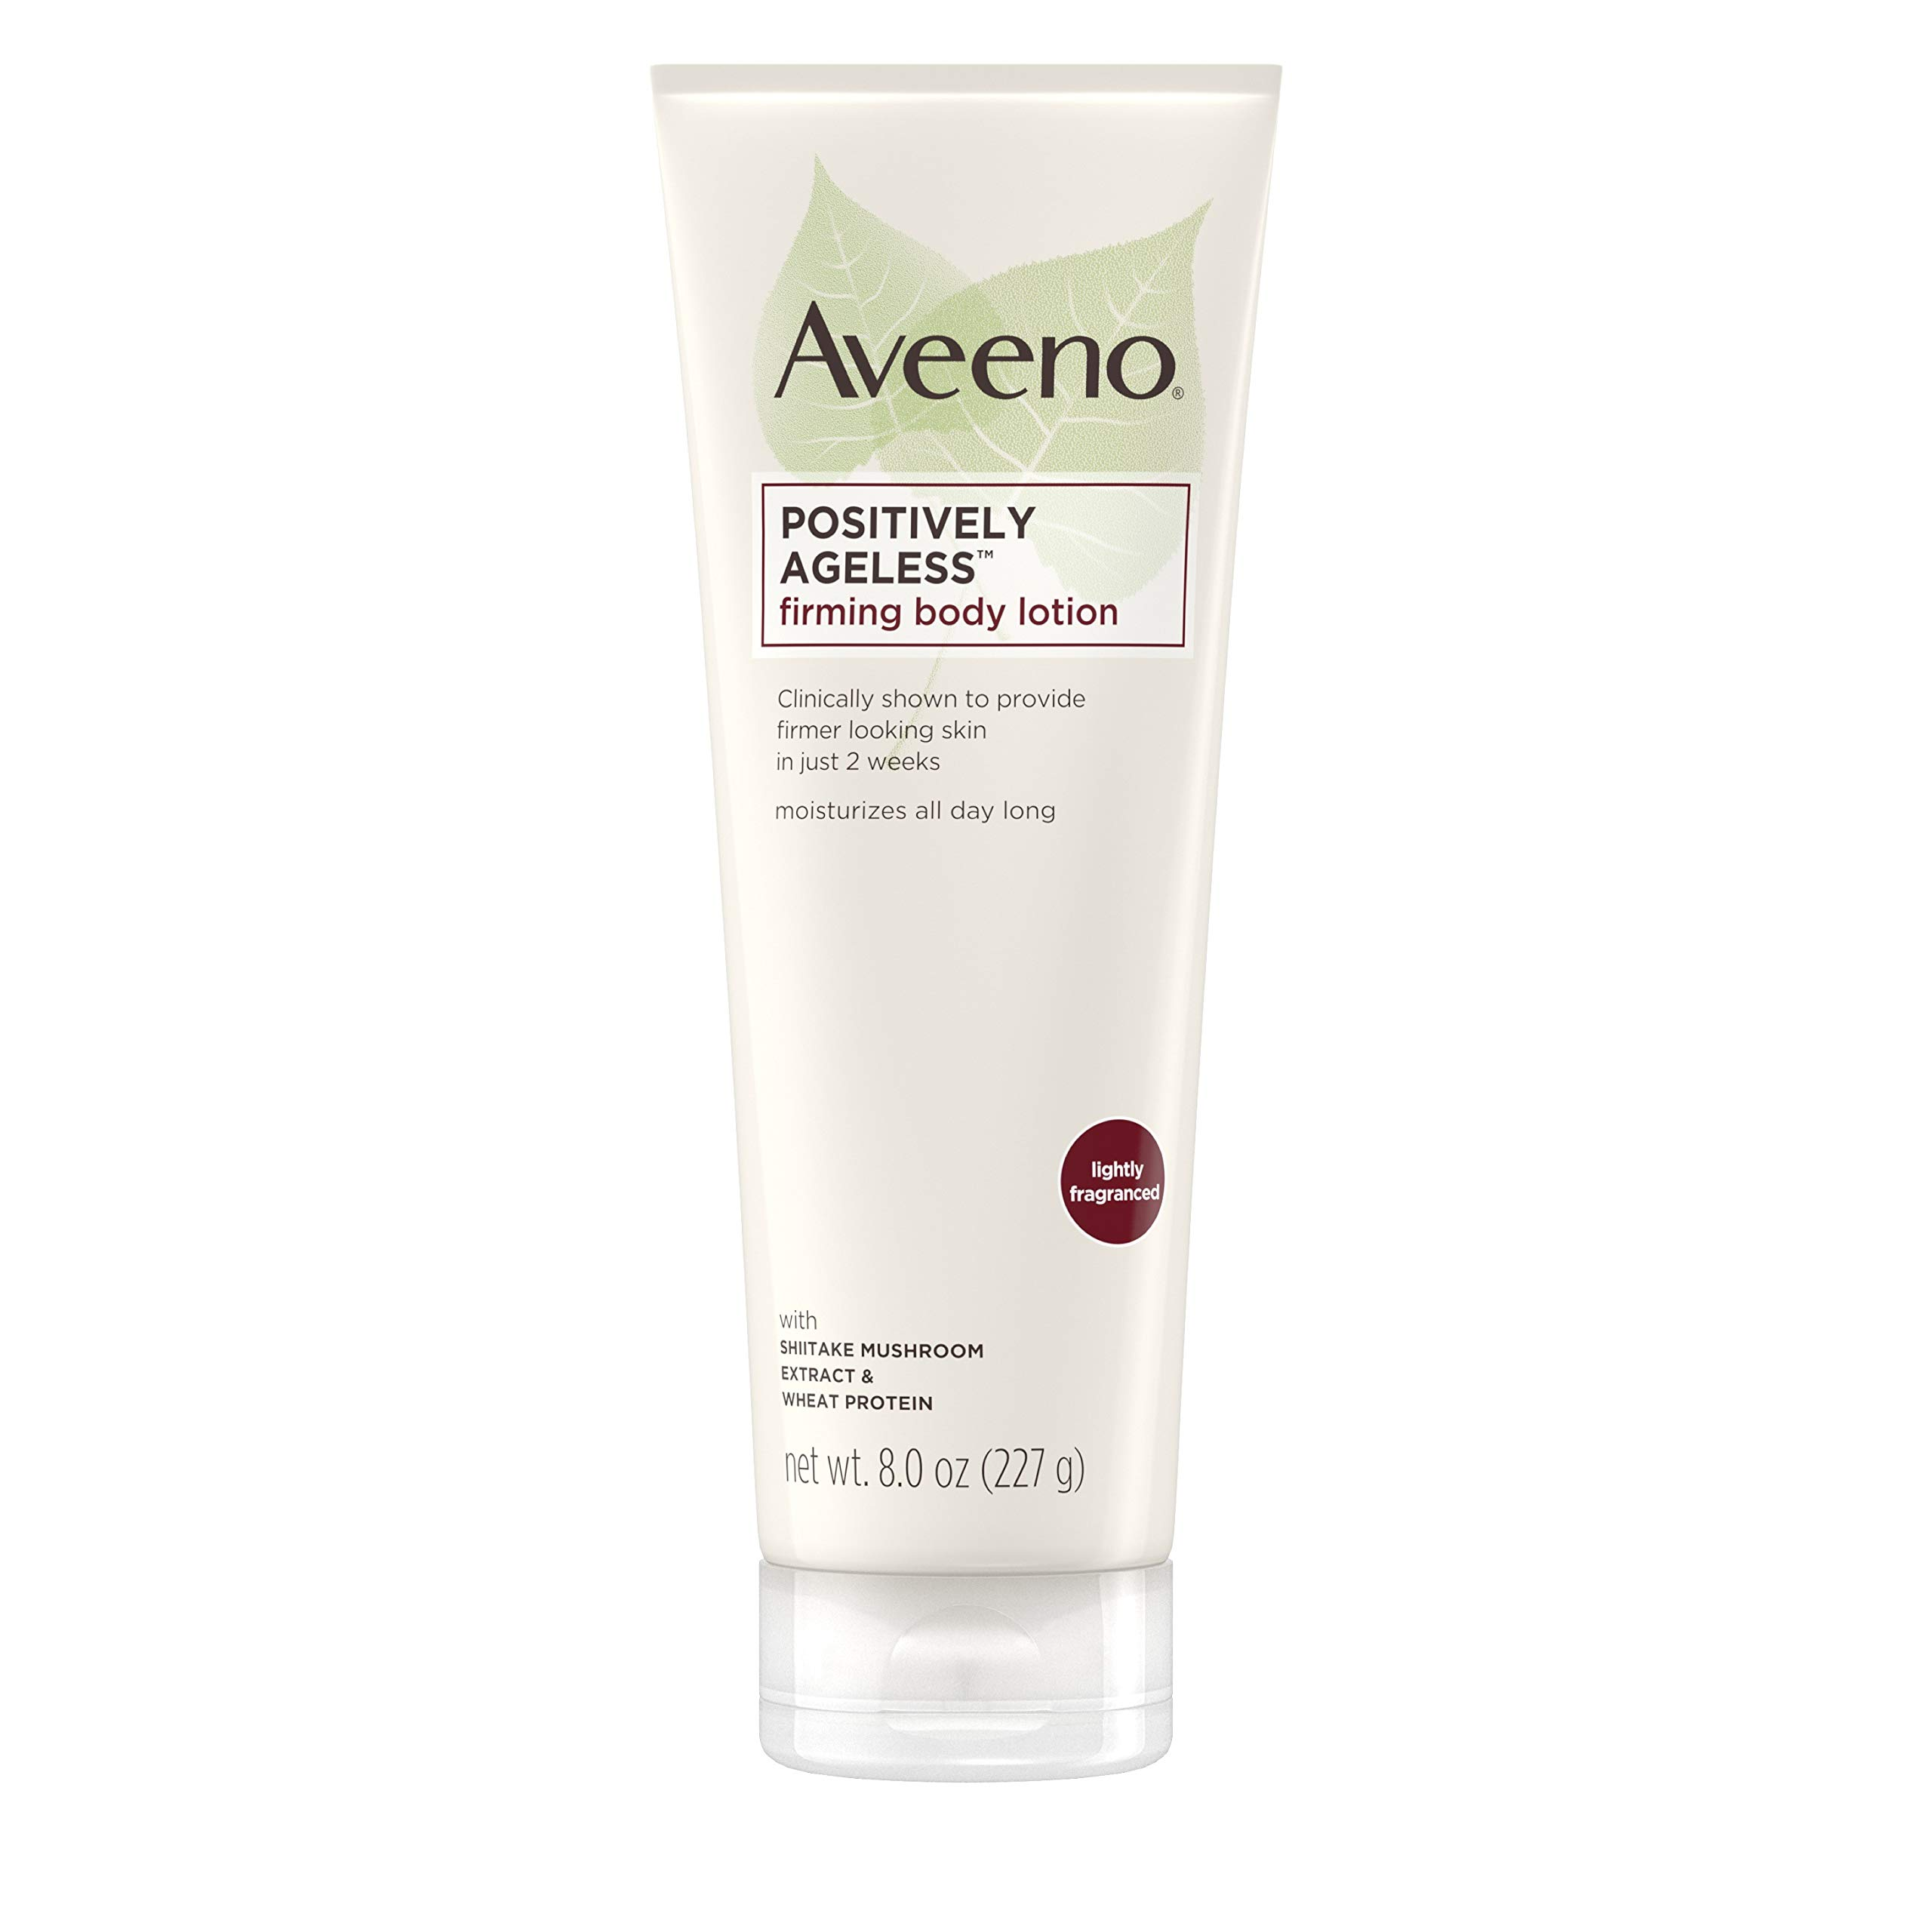 Aveeno Positively Ageless Anti-Aging Firming Body Lotion, 8 oz.